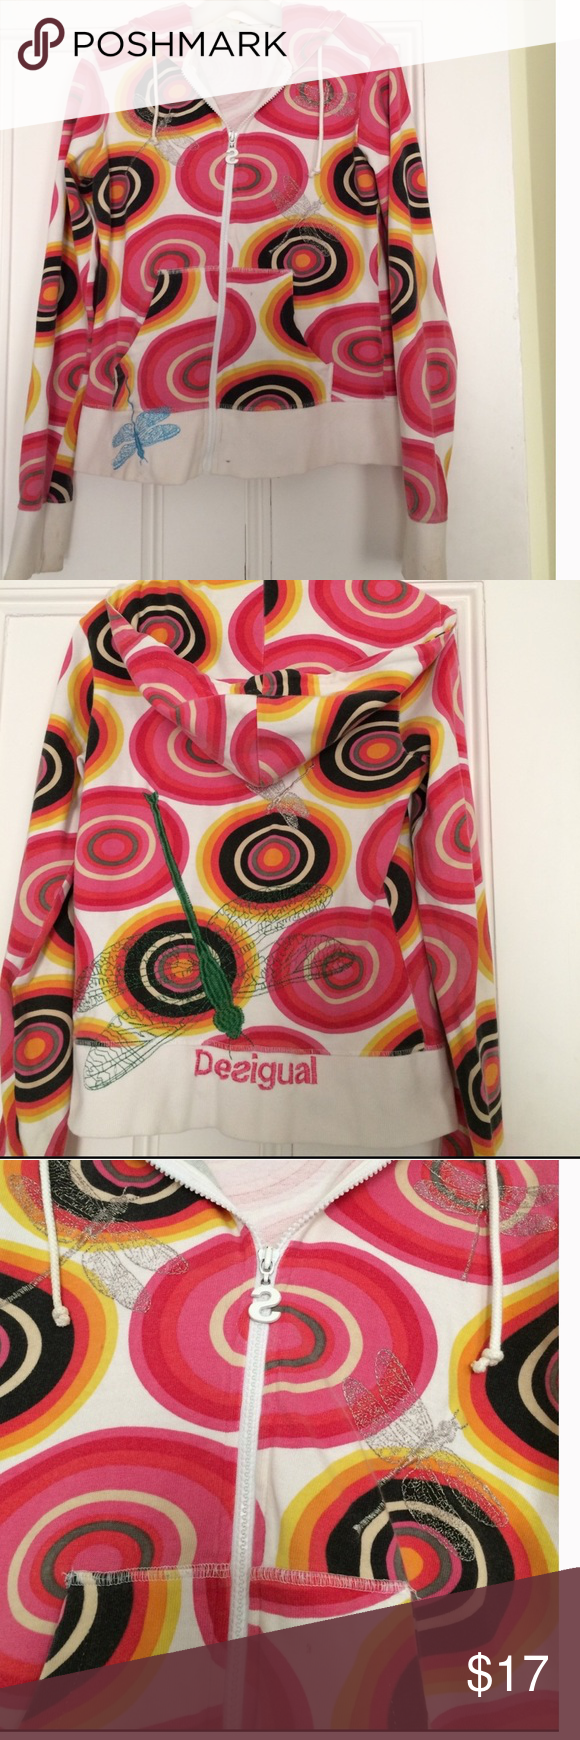 """DESIGUAL COLORFUL SWEATSHIRT, SIZE MEDIUM One of a kind sweatshirt as bought in Barcelona.  Very well worn, but has a few stains in photo 4 on the cuff. Needs to be cleaned to bring life back to it.  No holes, tears or odors, colors still vibrant.  Length is 23"""" long. Size is medium but its slim fitting. Desigual Tops Sweatshirts & Hoodies"""